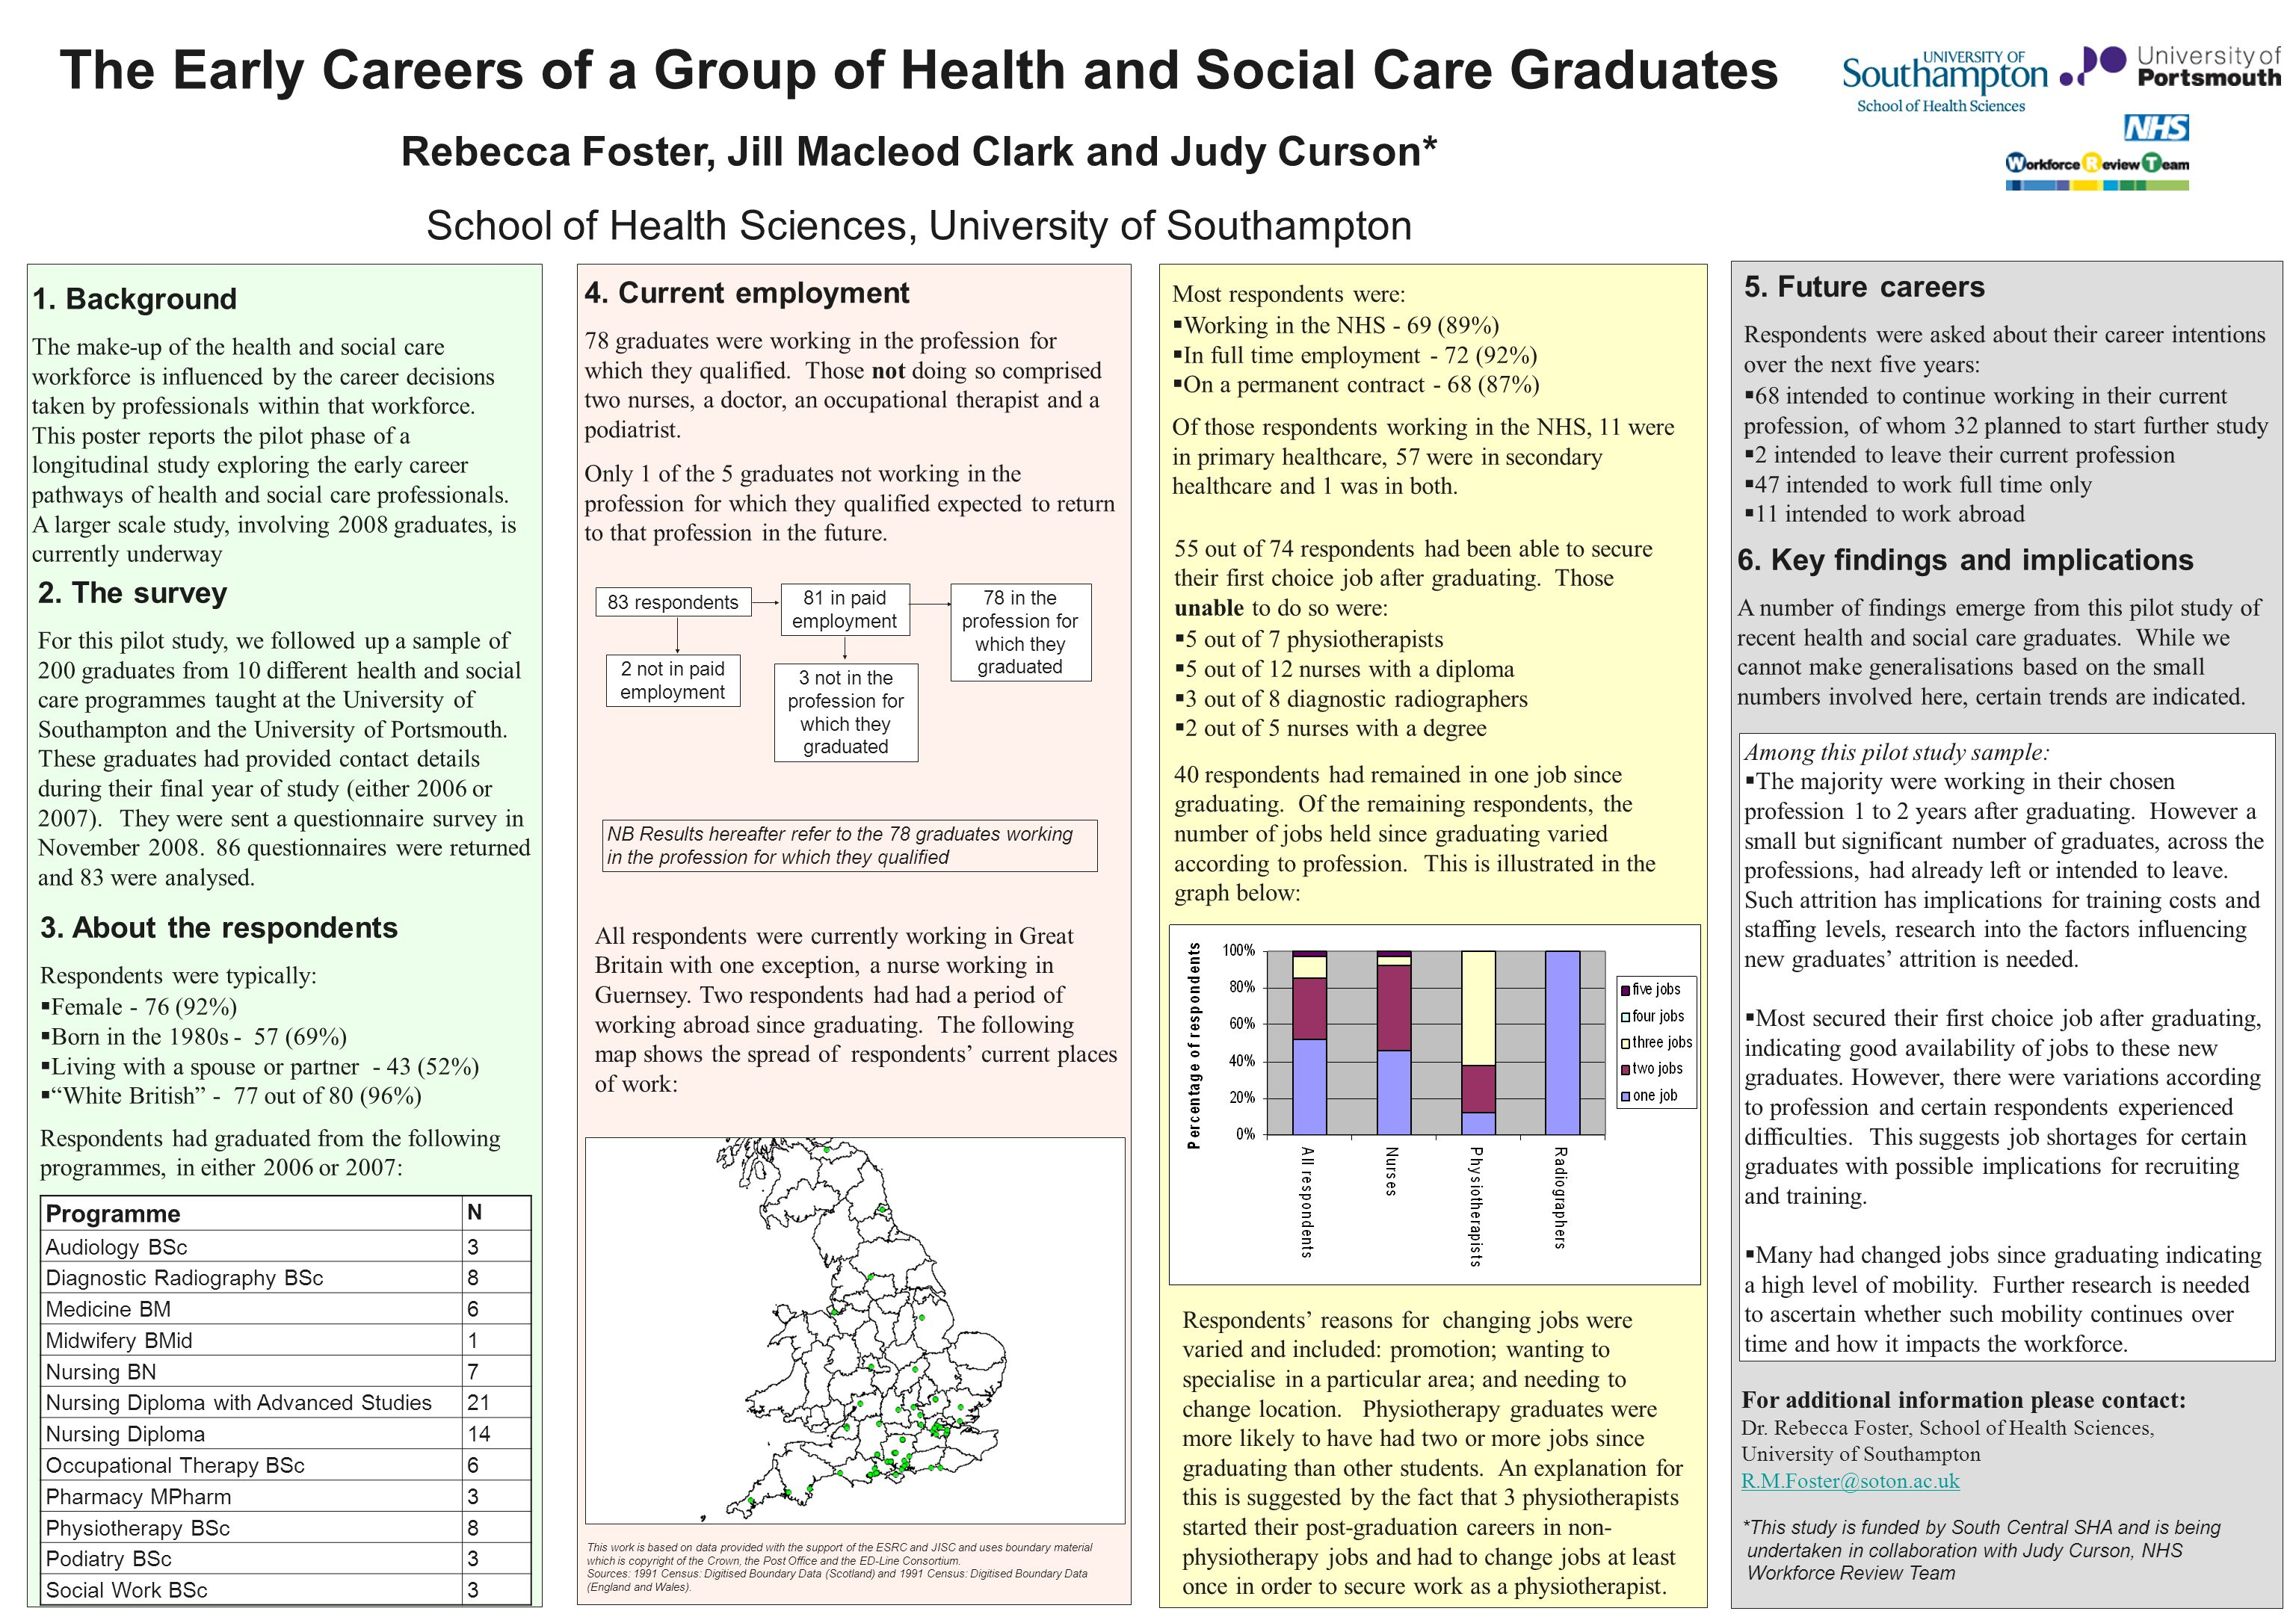 The Early Careers of a Group of Health and Social Care Graduates Rebecca Foster, Jill Macleod Clark and Judy Curson* School of Health Sciences, University of Southampton 1.